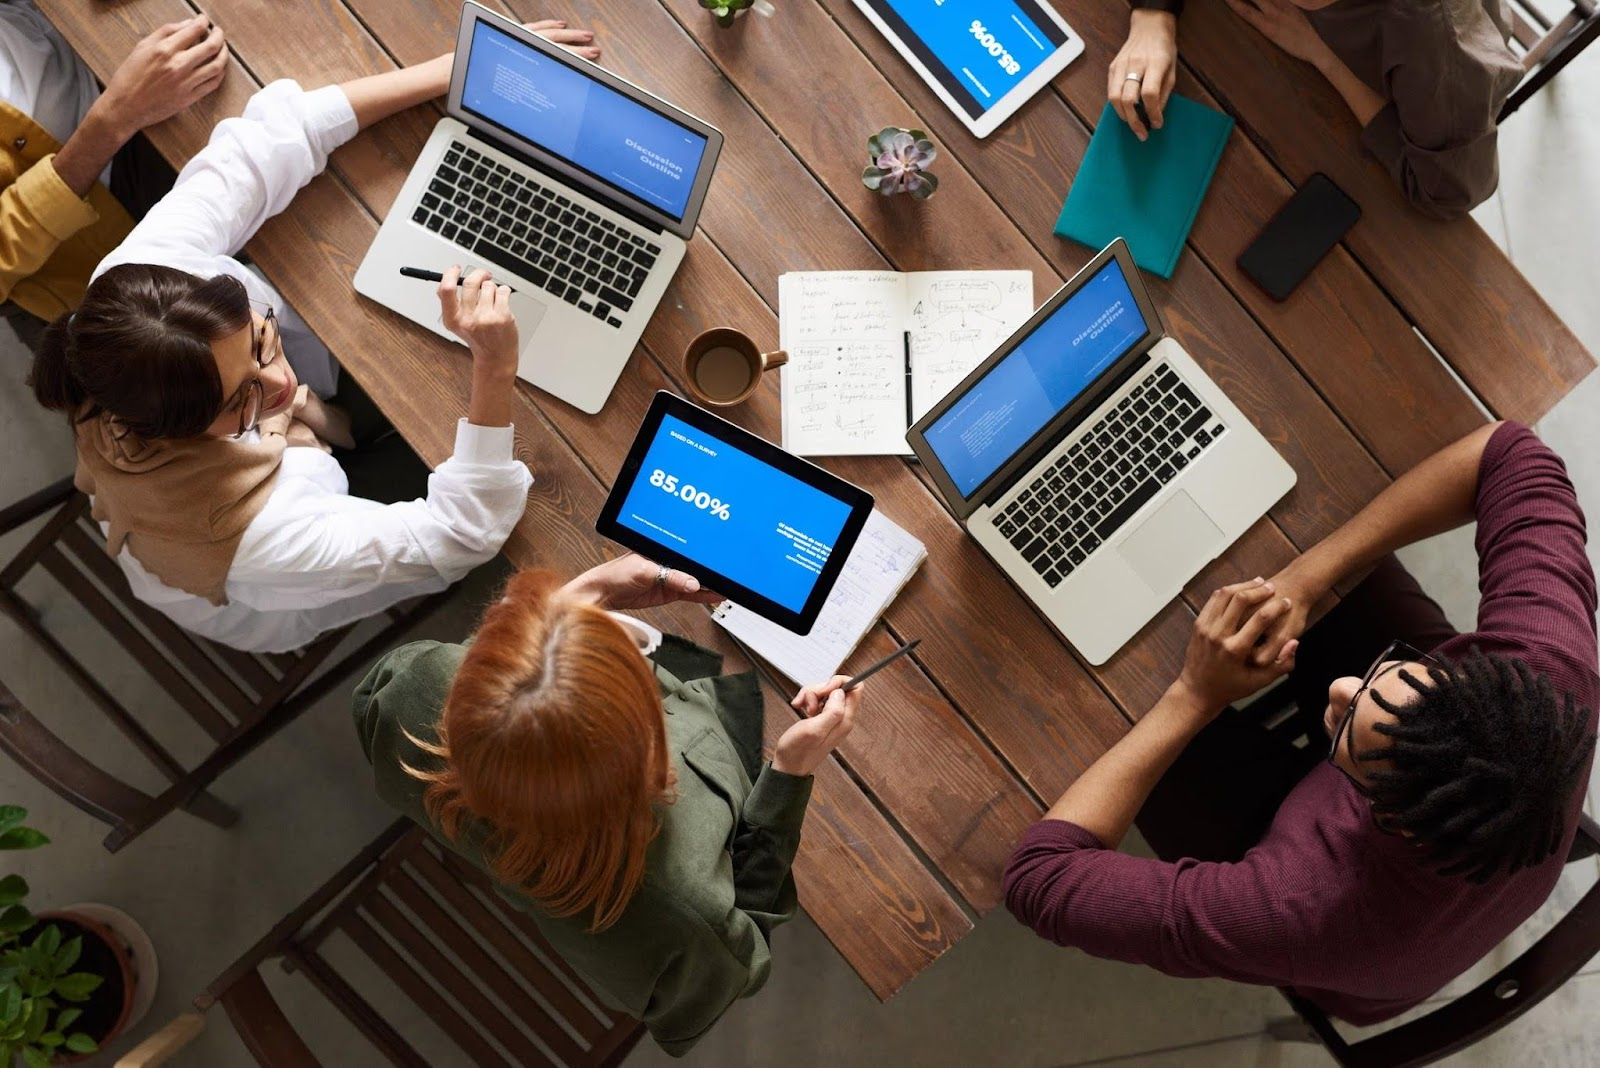 top-view-photo-of-group-of-people-using-macbook-while-discussing-employee health and safety